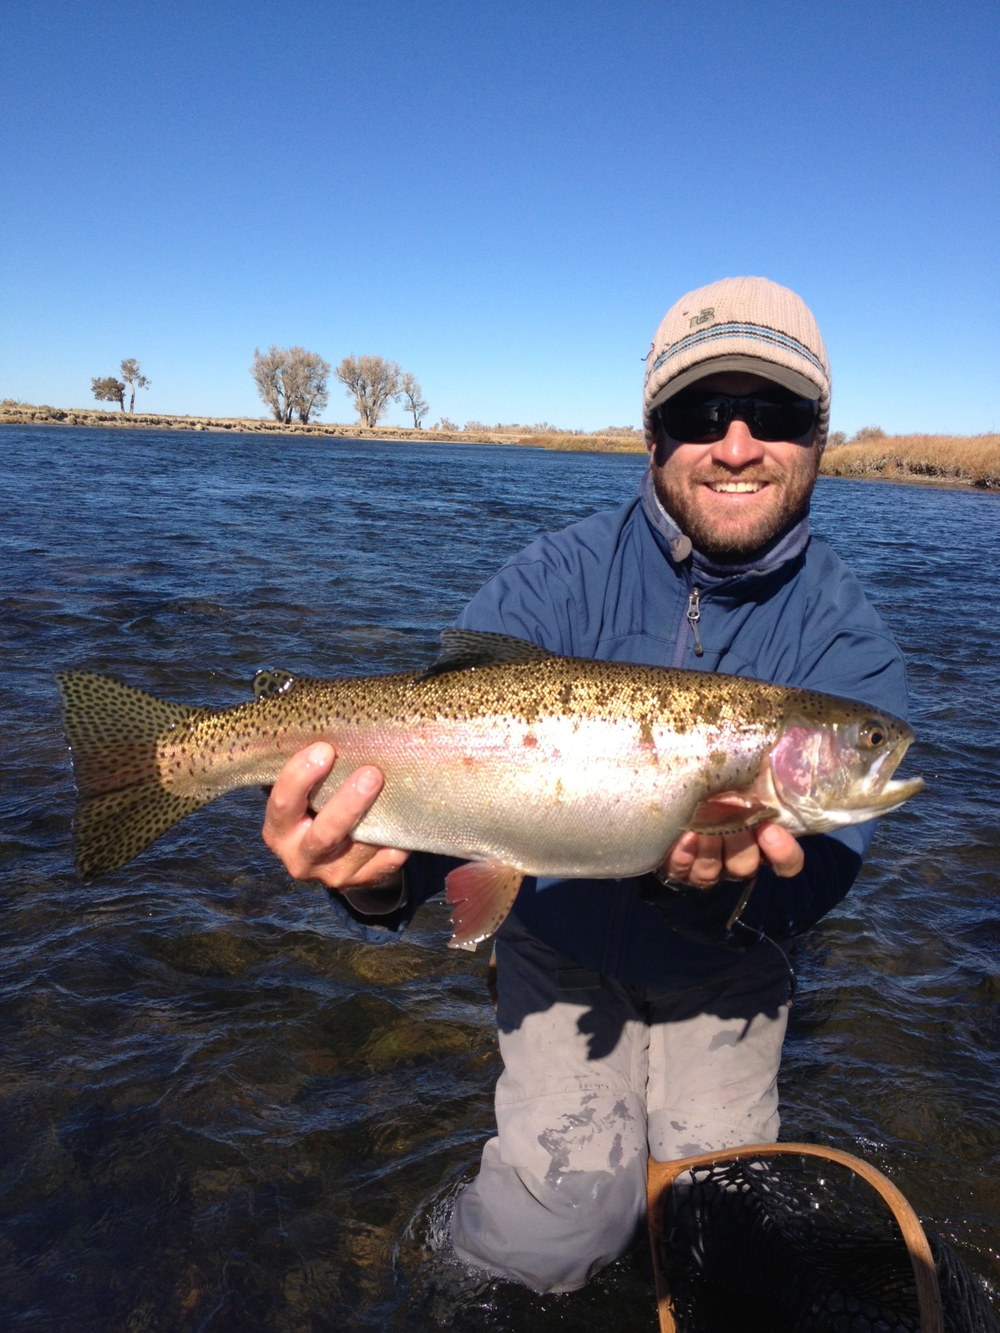 Provo fishing license free programs utilities and apps for Free fishing license